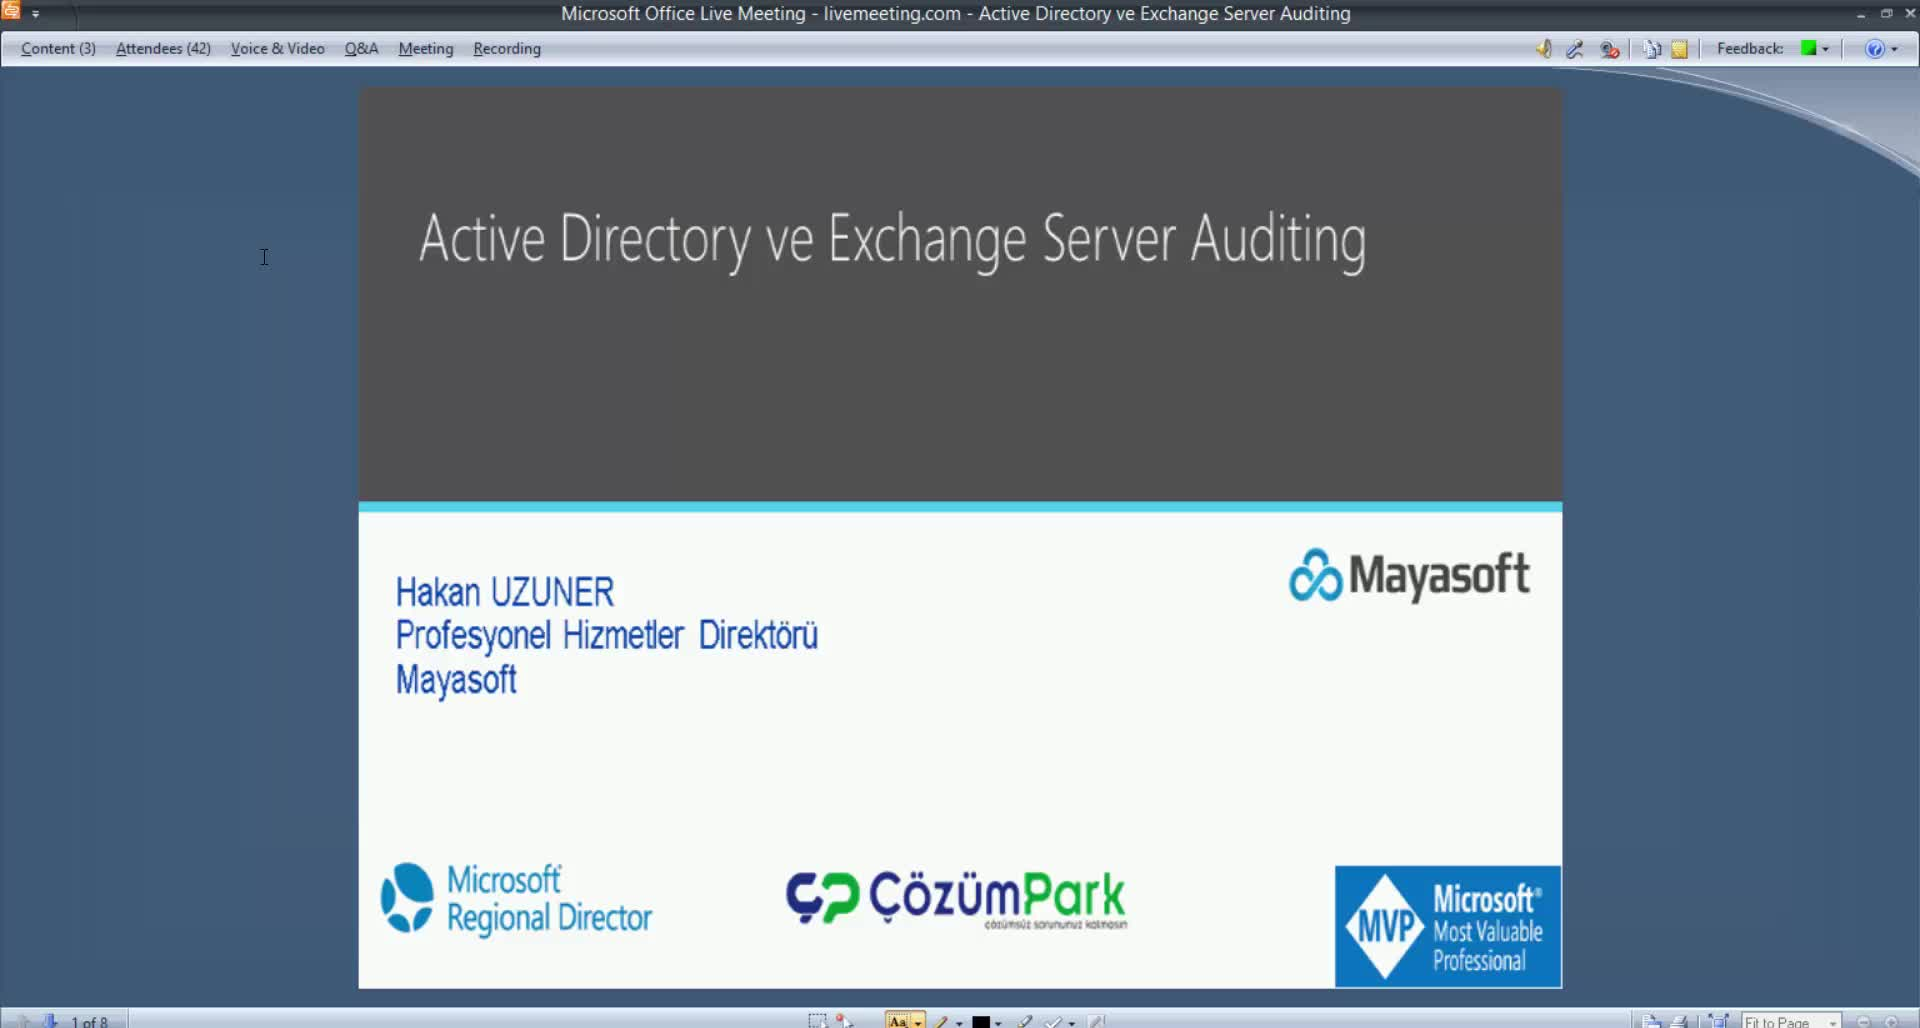 Active Directory ve Exchange Server Auditing